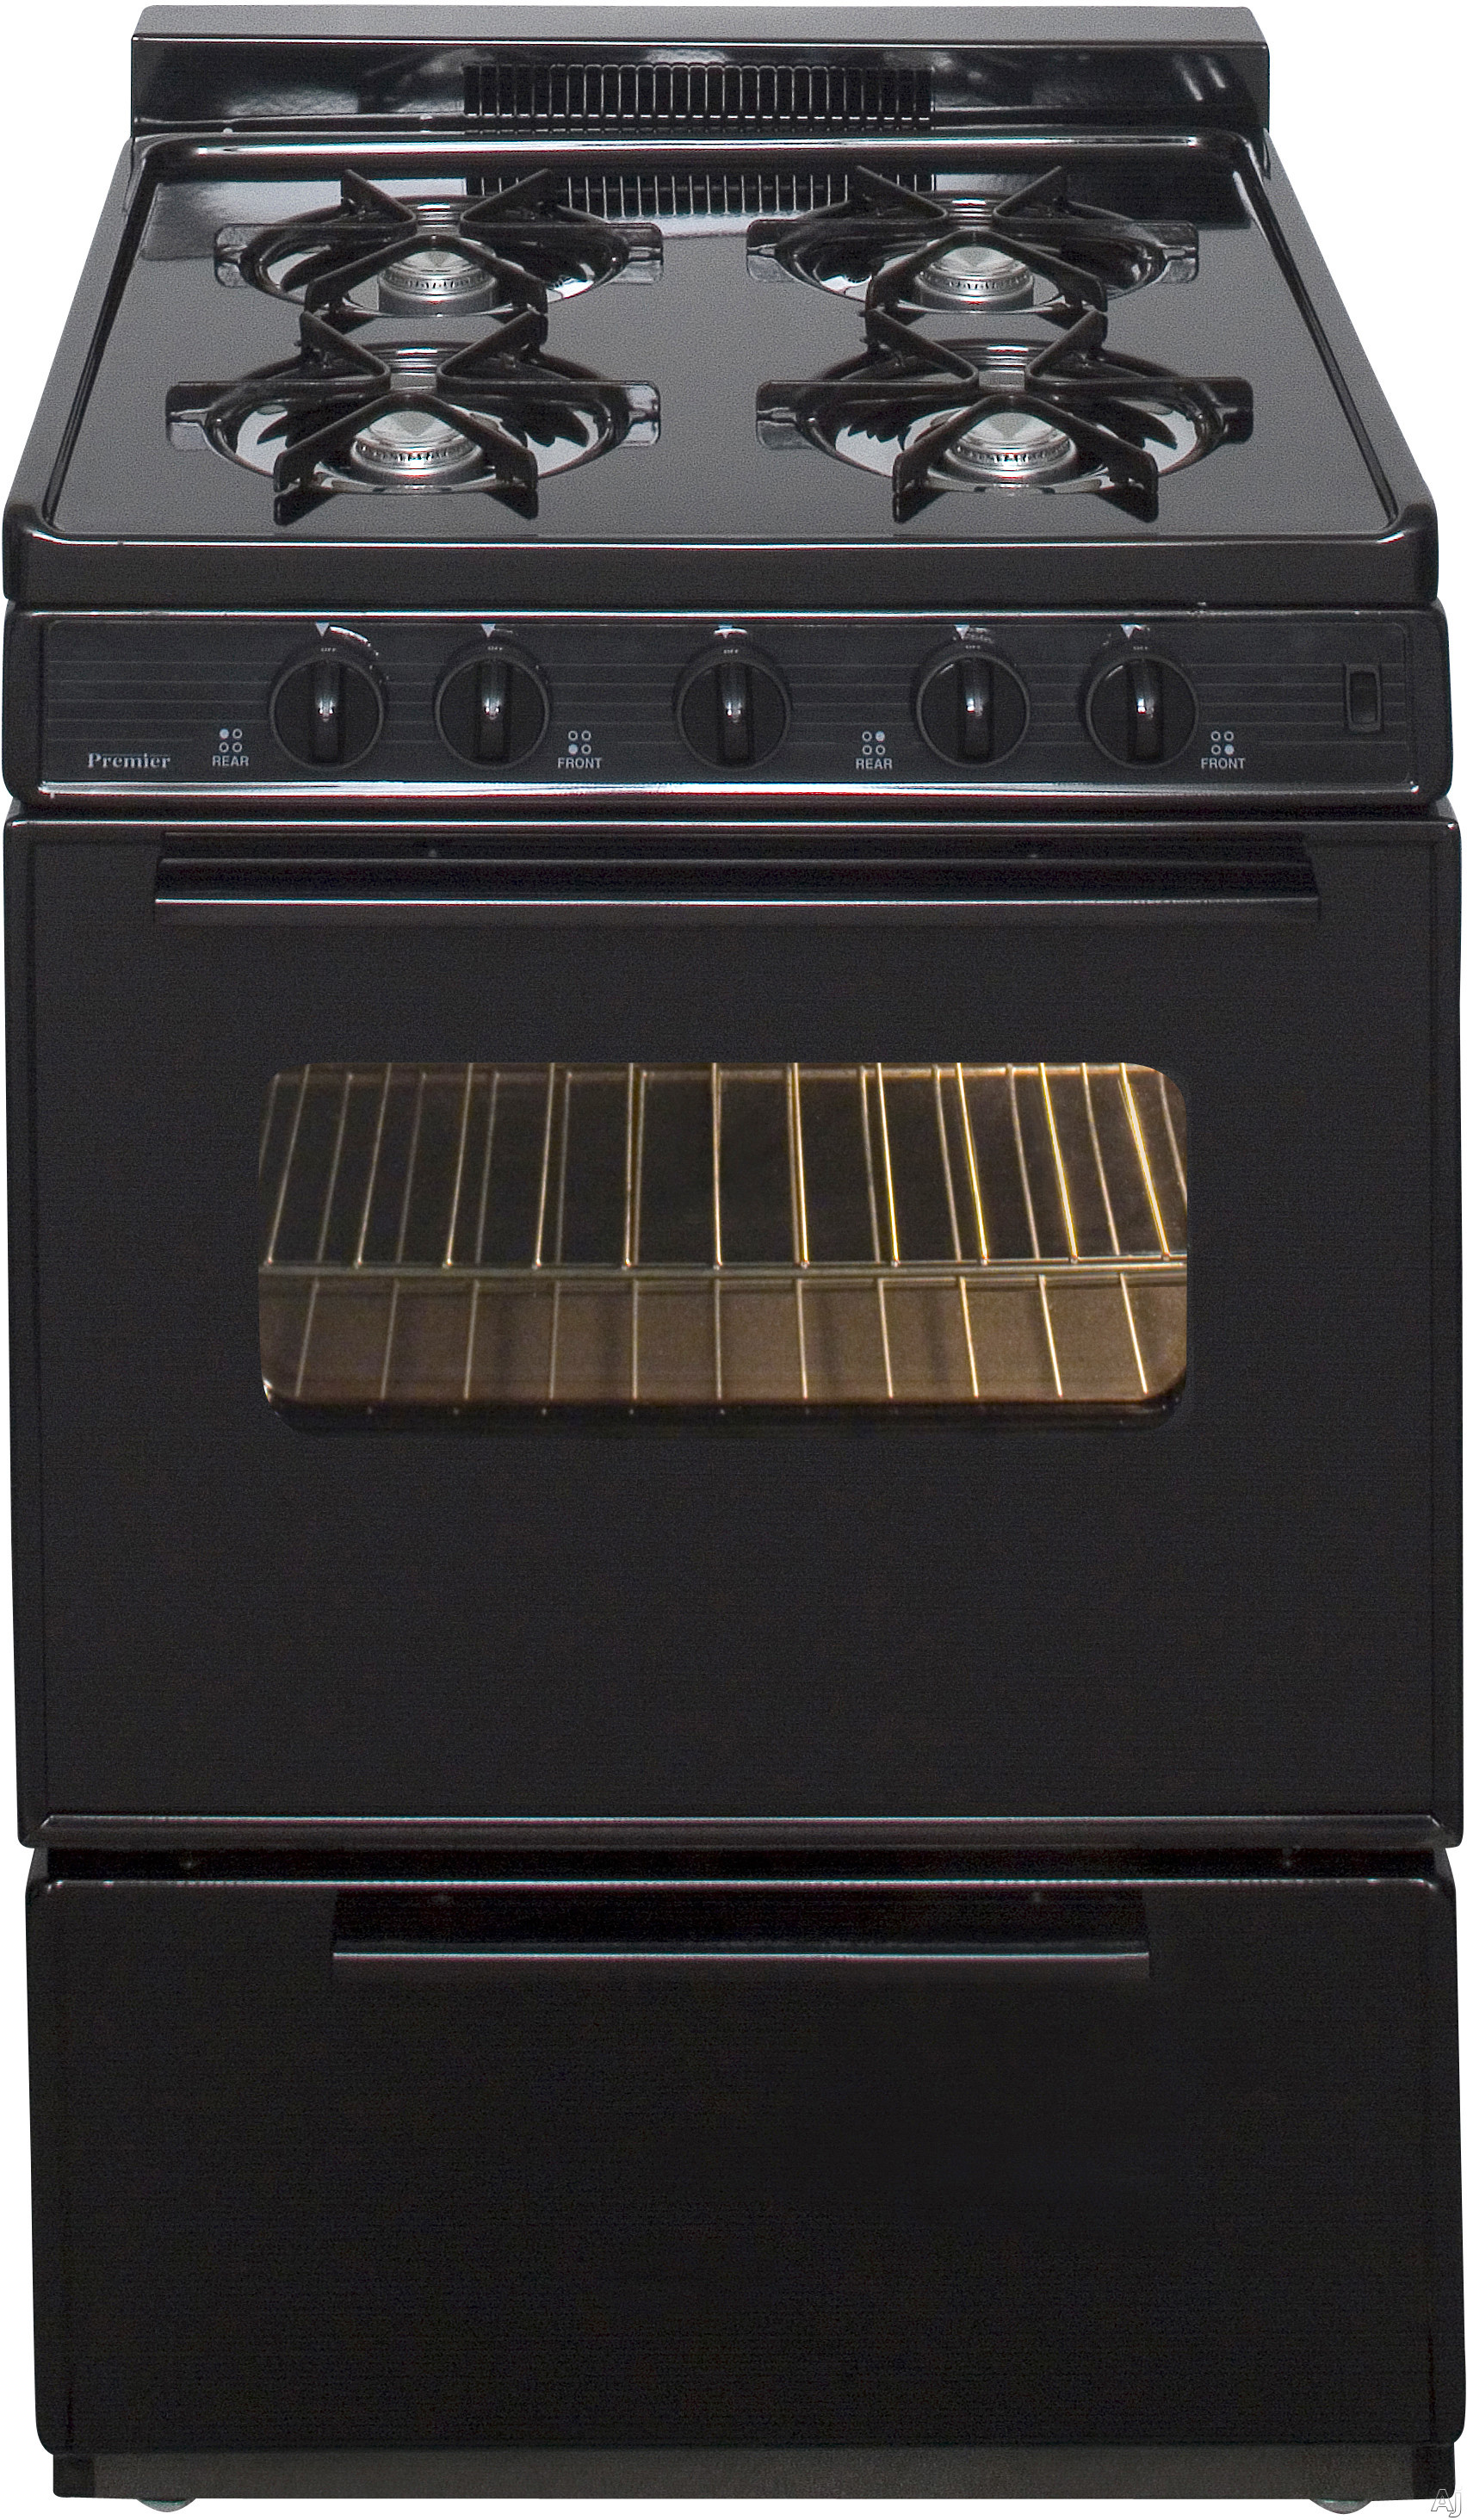 Premier SCK3XRBP 24 Inch Freestanding Gas Range with 4 Open Burners, Chrome Heat Reflector Trays, Electronic Ignition, 17,000 BTU Oven Burner, Lift-up Top, ADA Compliant and 1 1/2 Inch Vent Rail Cap